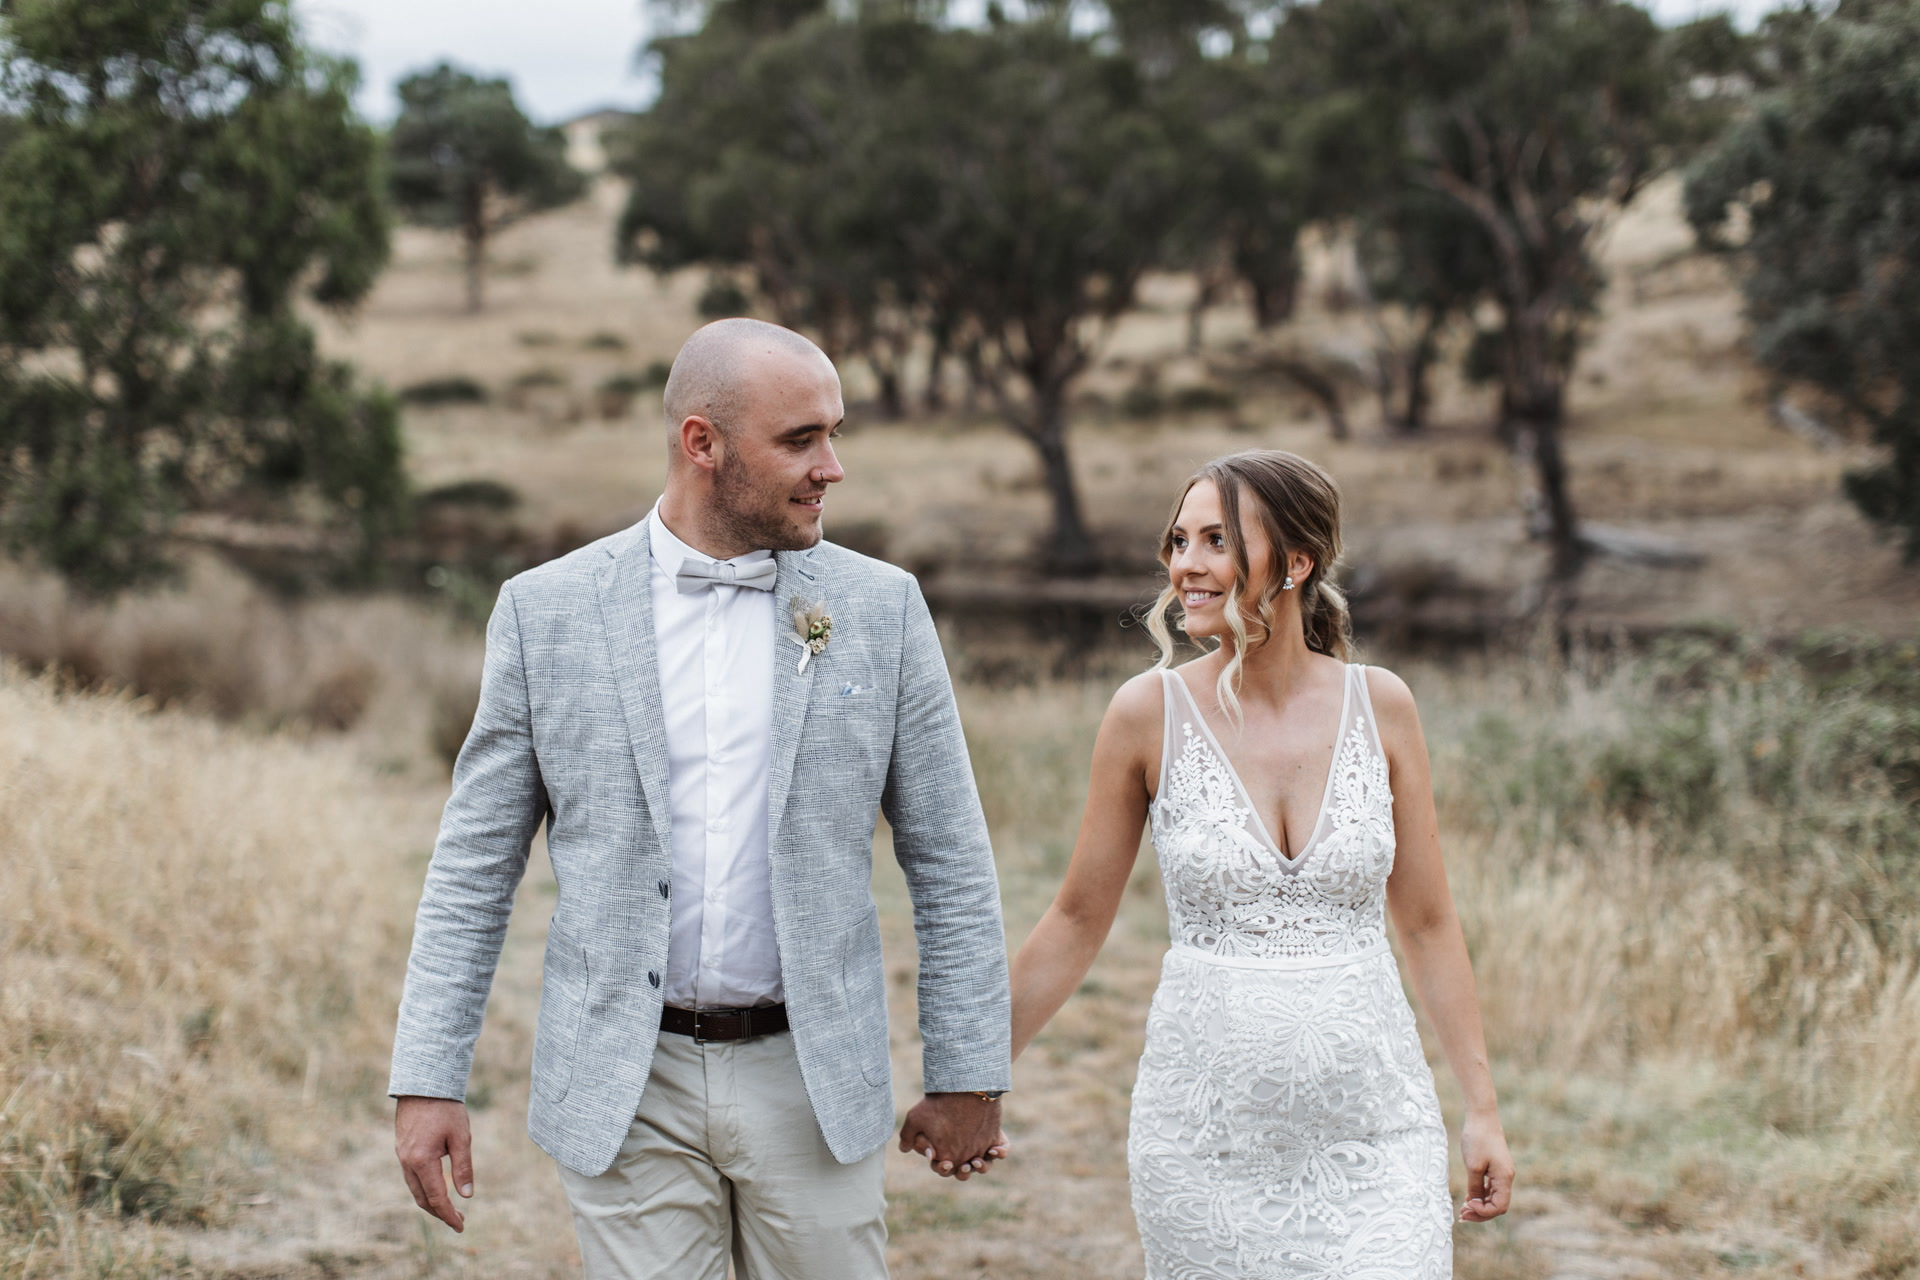 Kalea + Jake | Yarra Ranges Shire, Australia | The Farm Yarra Valley